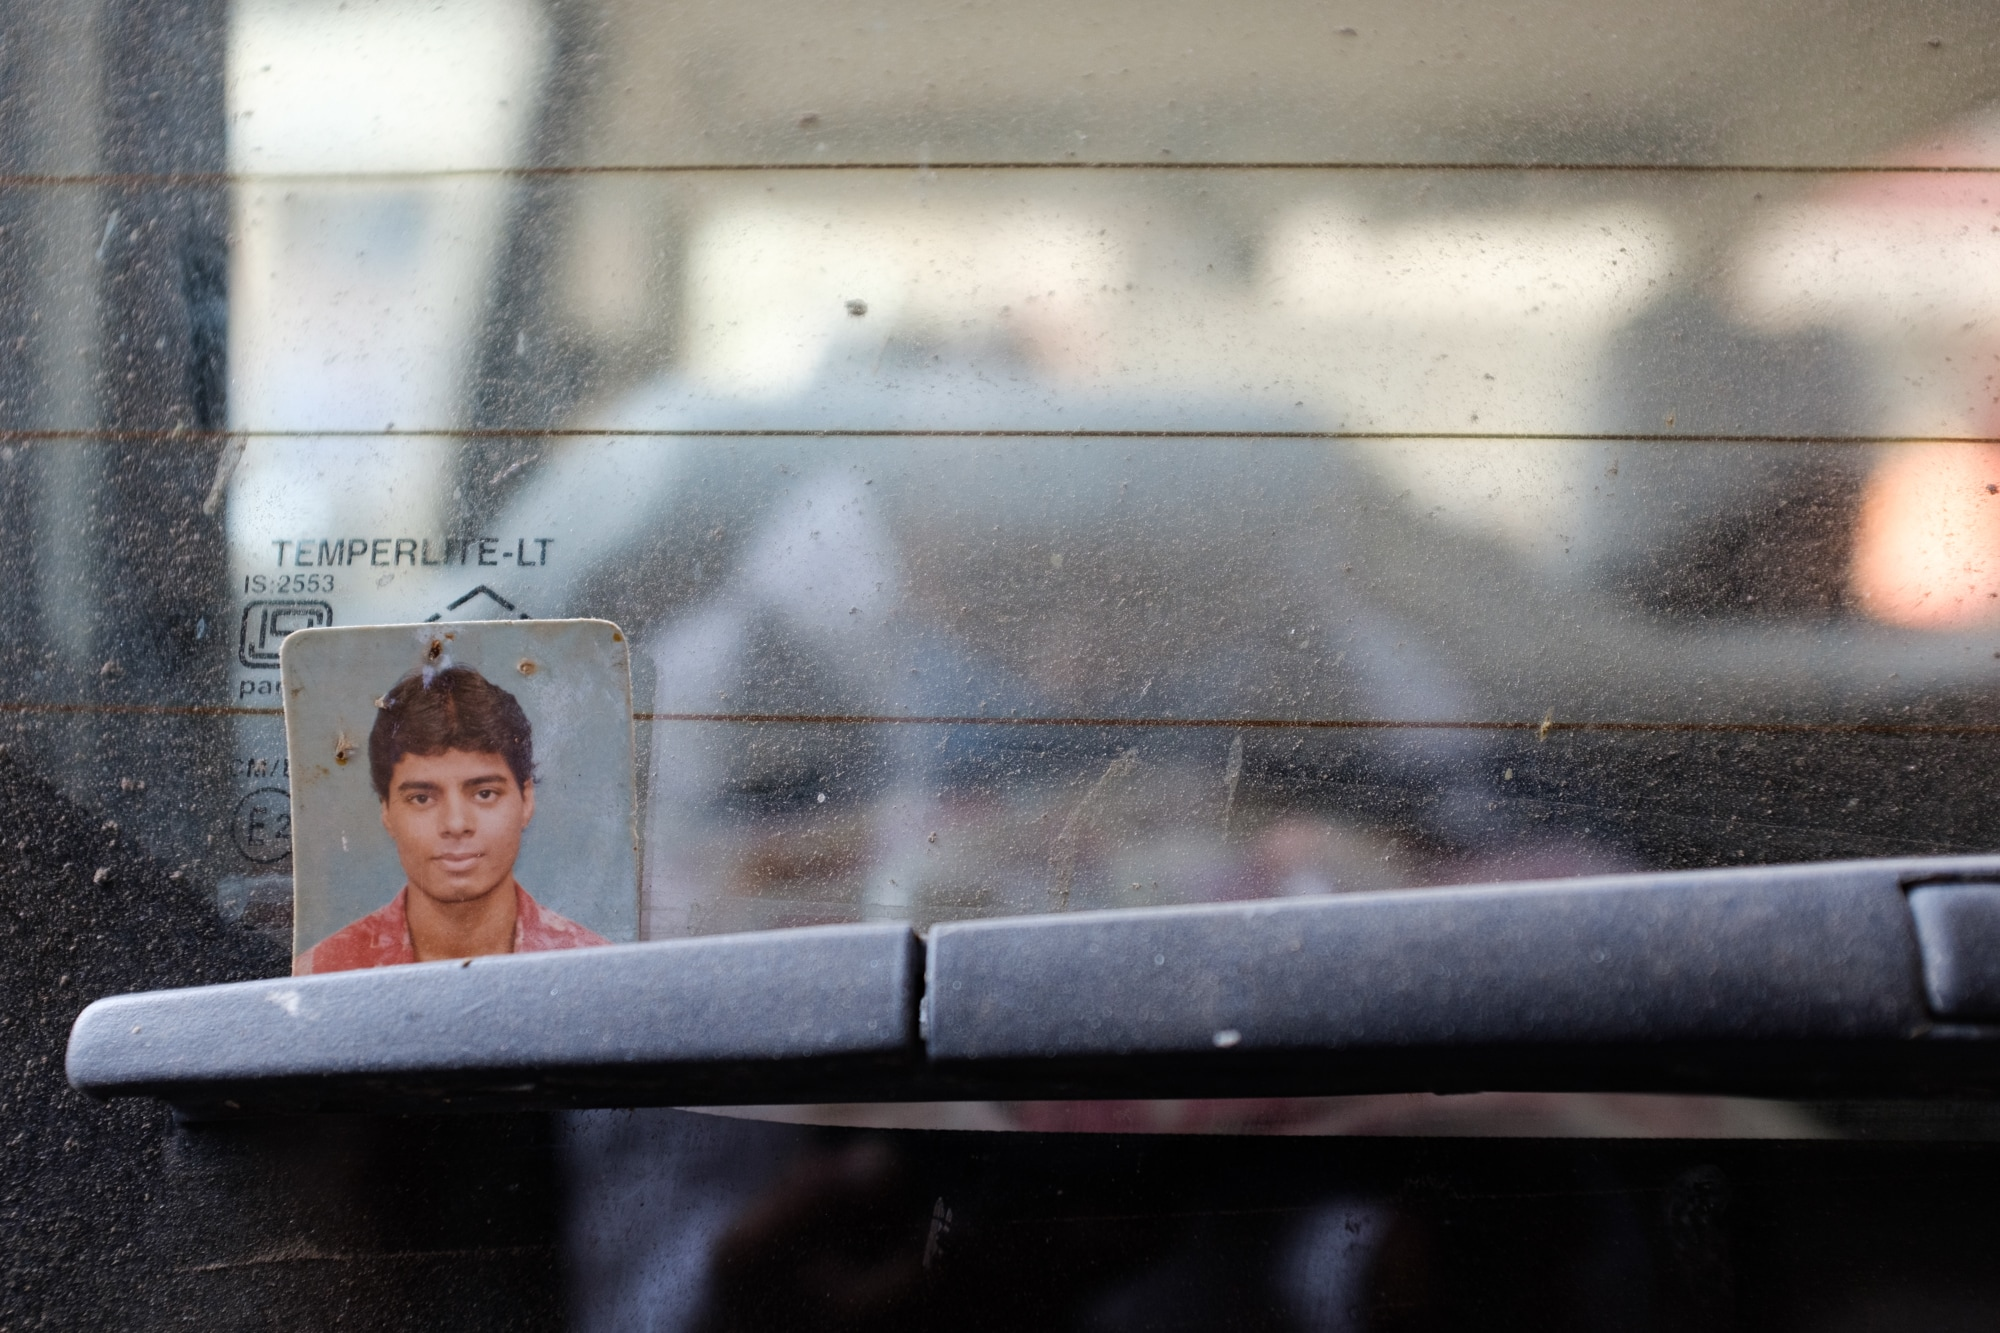 An old passport size picture at the back of a car.